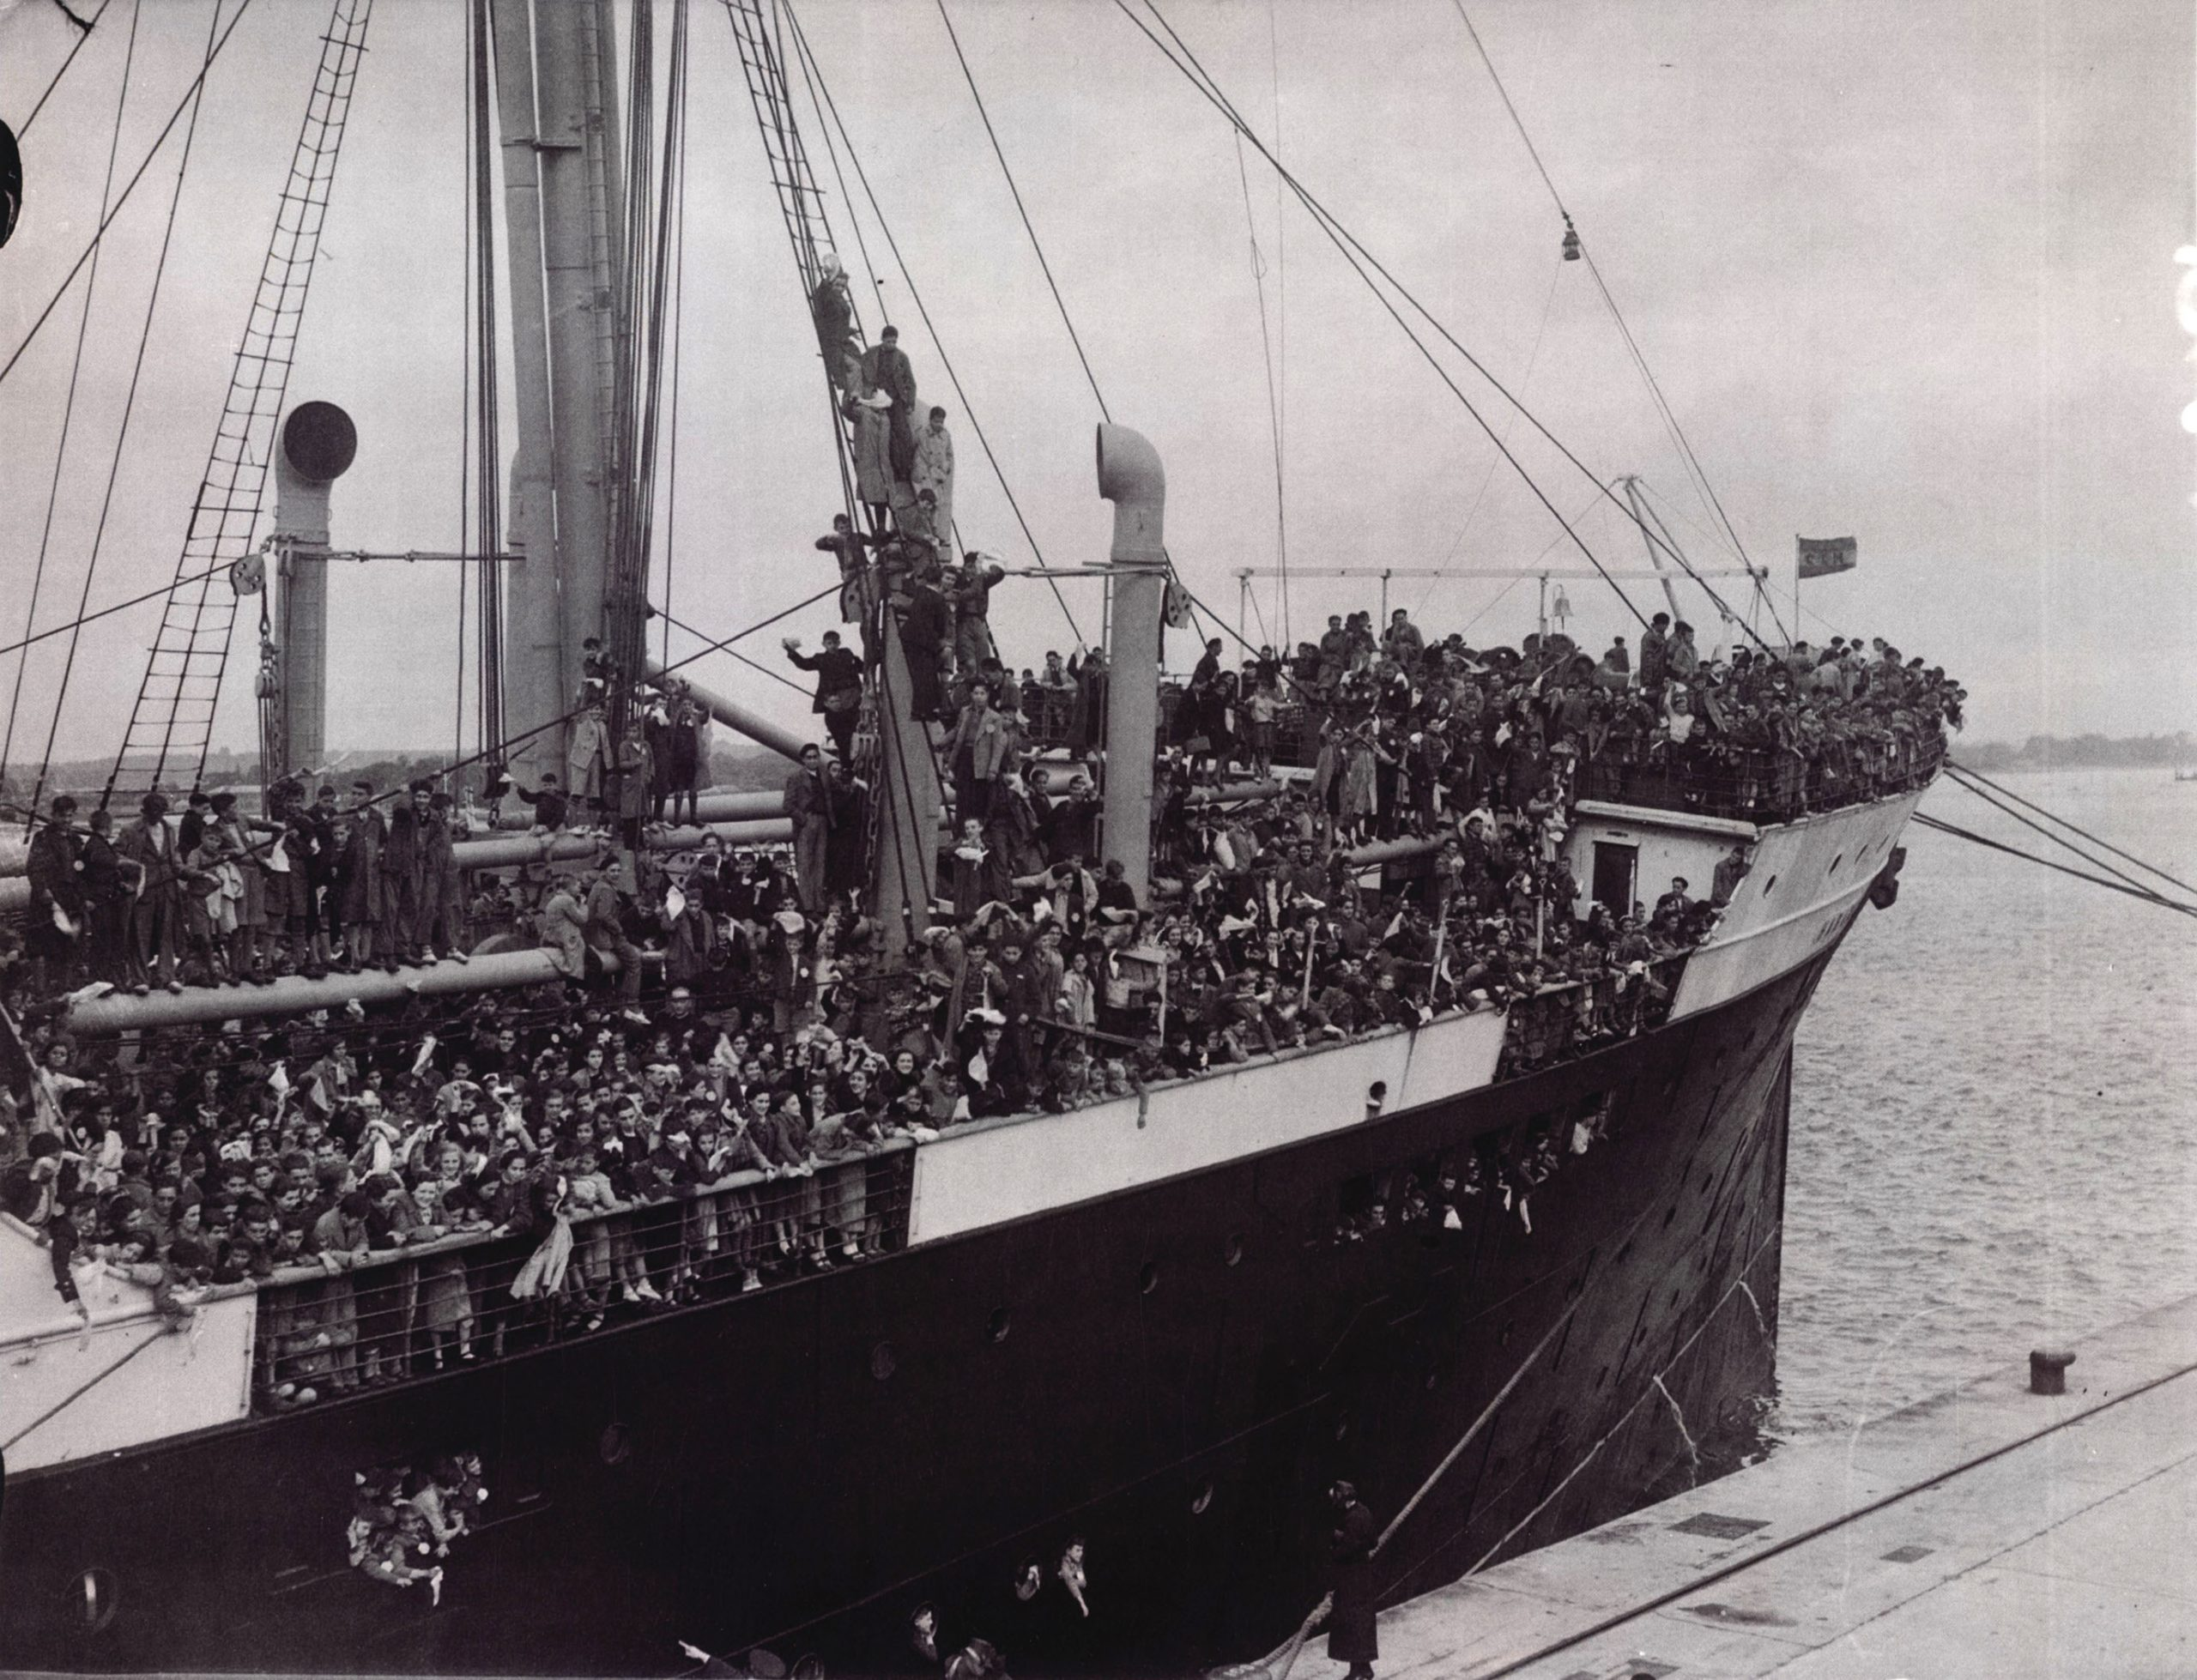 A photo of a ship carrying the child refugees. They fill the docks and some have climbed masts.